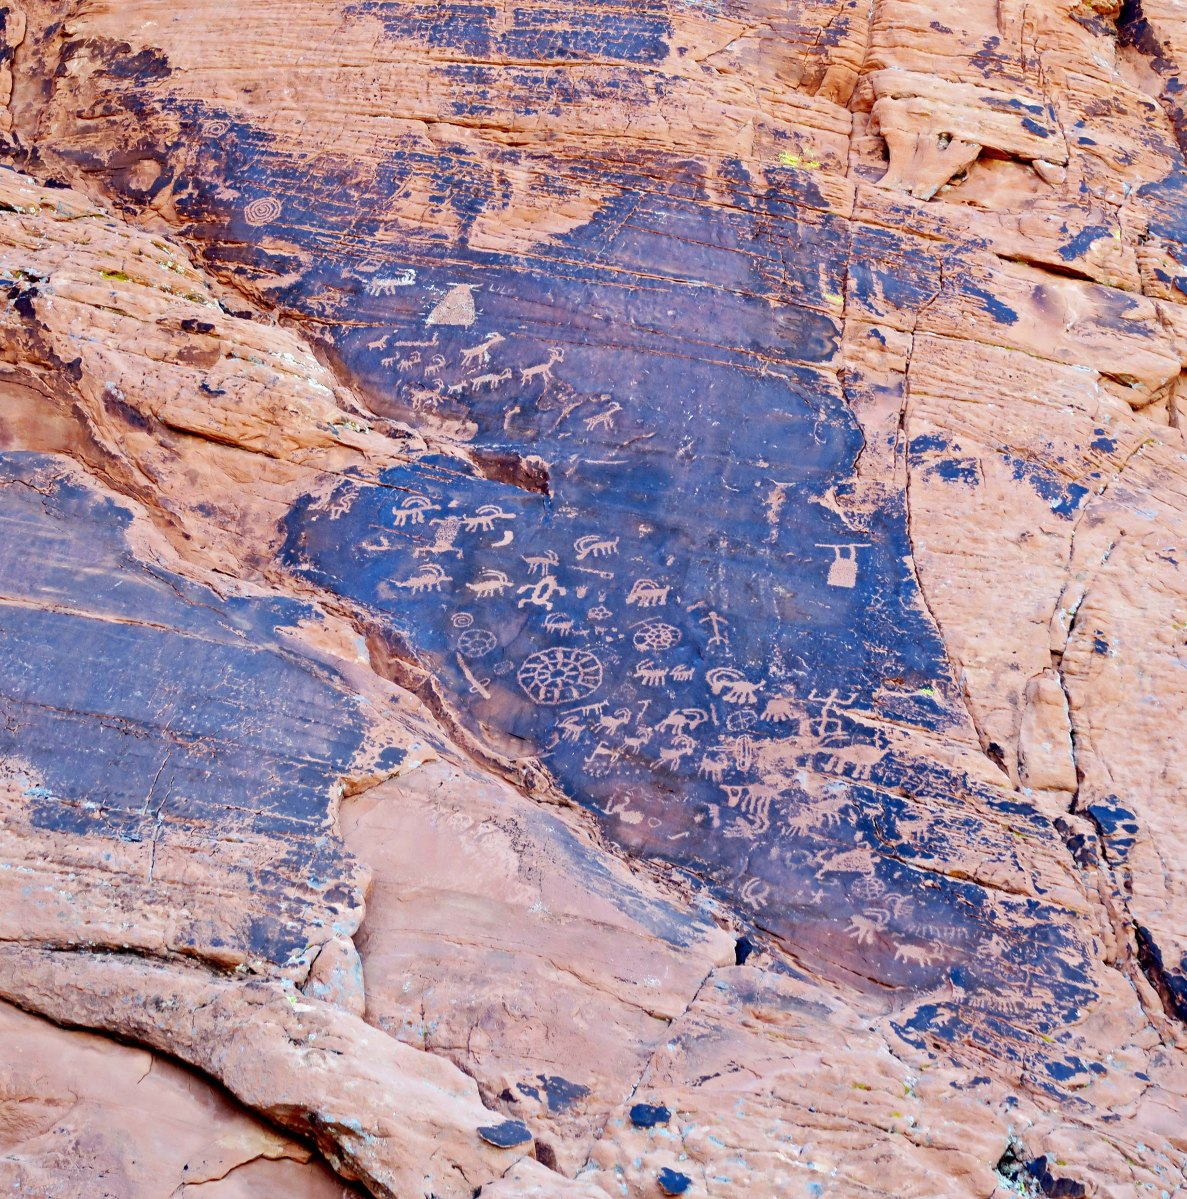 Petroglyphs carved into desert varnish on a cliff face near Atlatl Rock in Valley of Fire State Park near Las Vegas, Nevada.